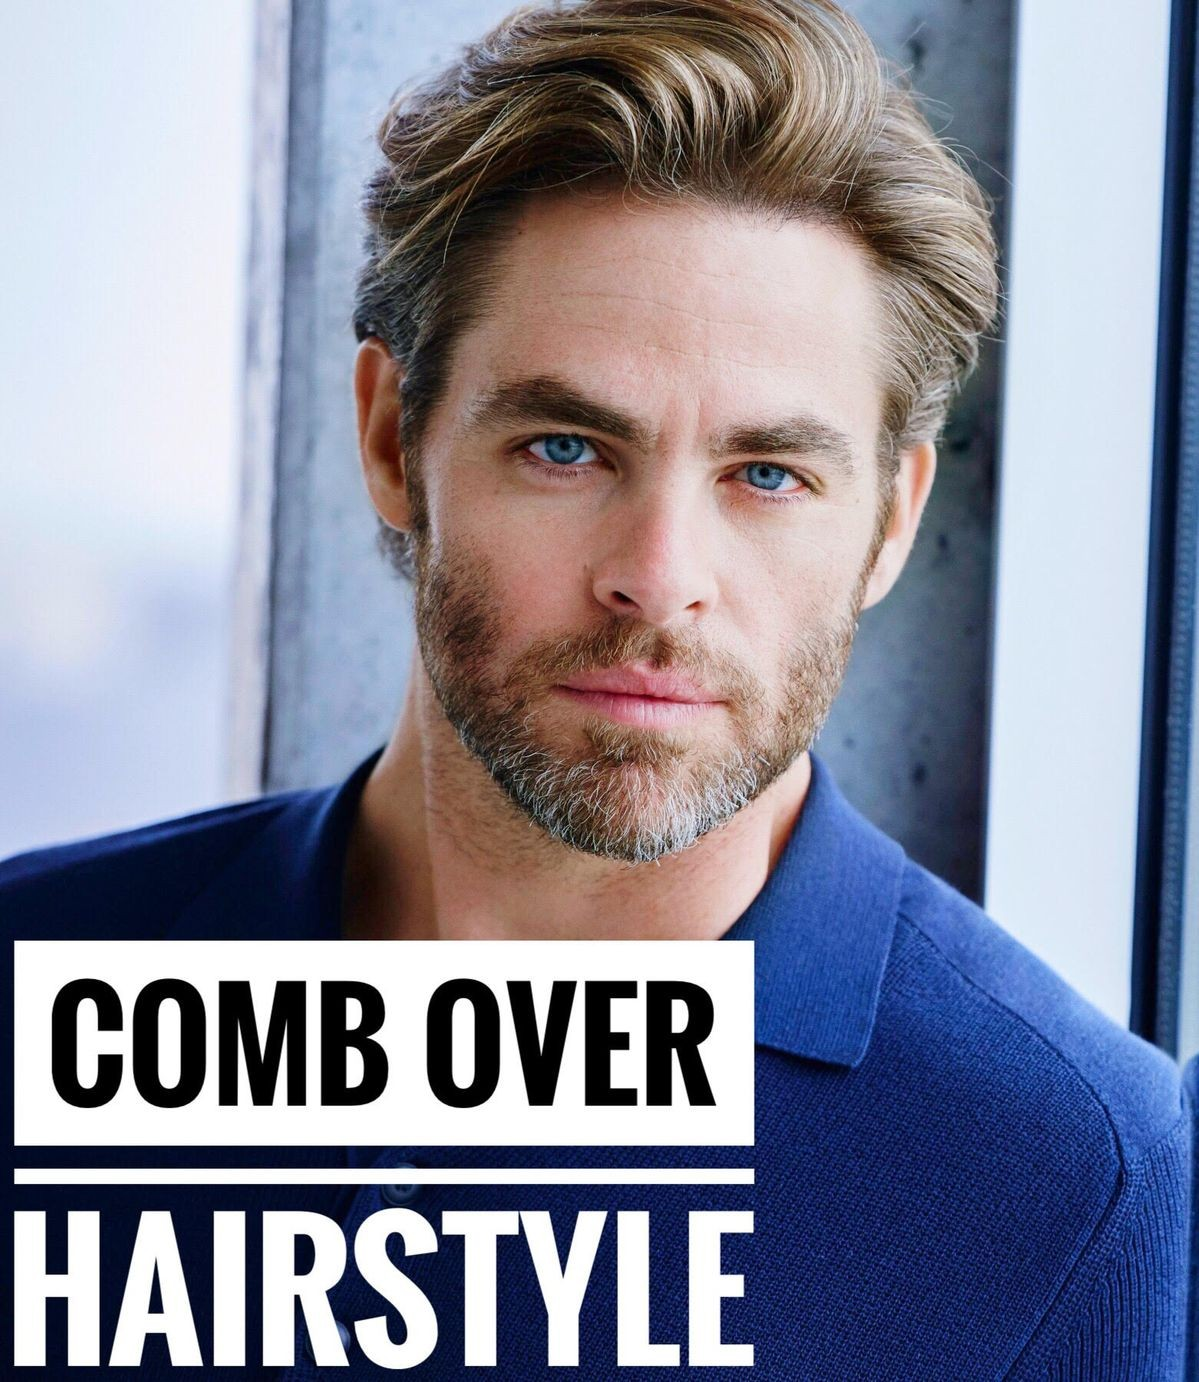 Comb over hairstyle